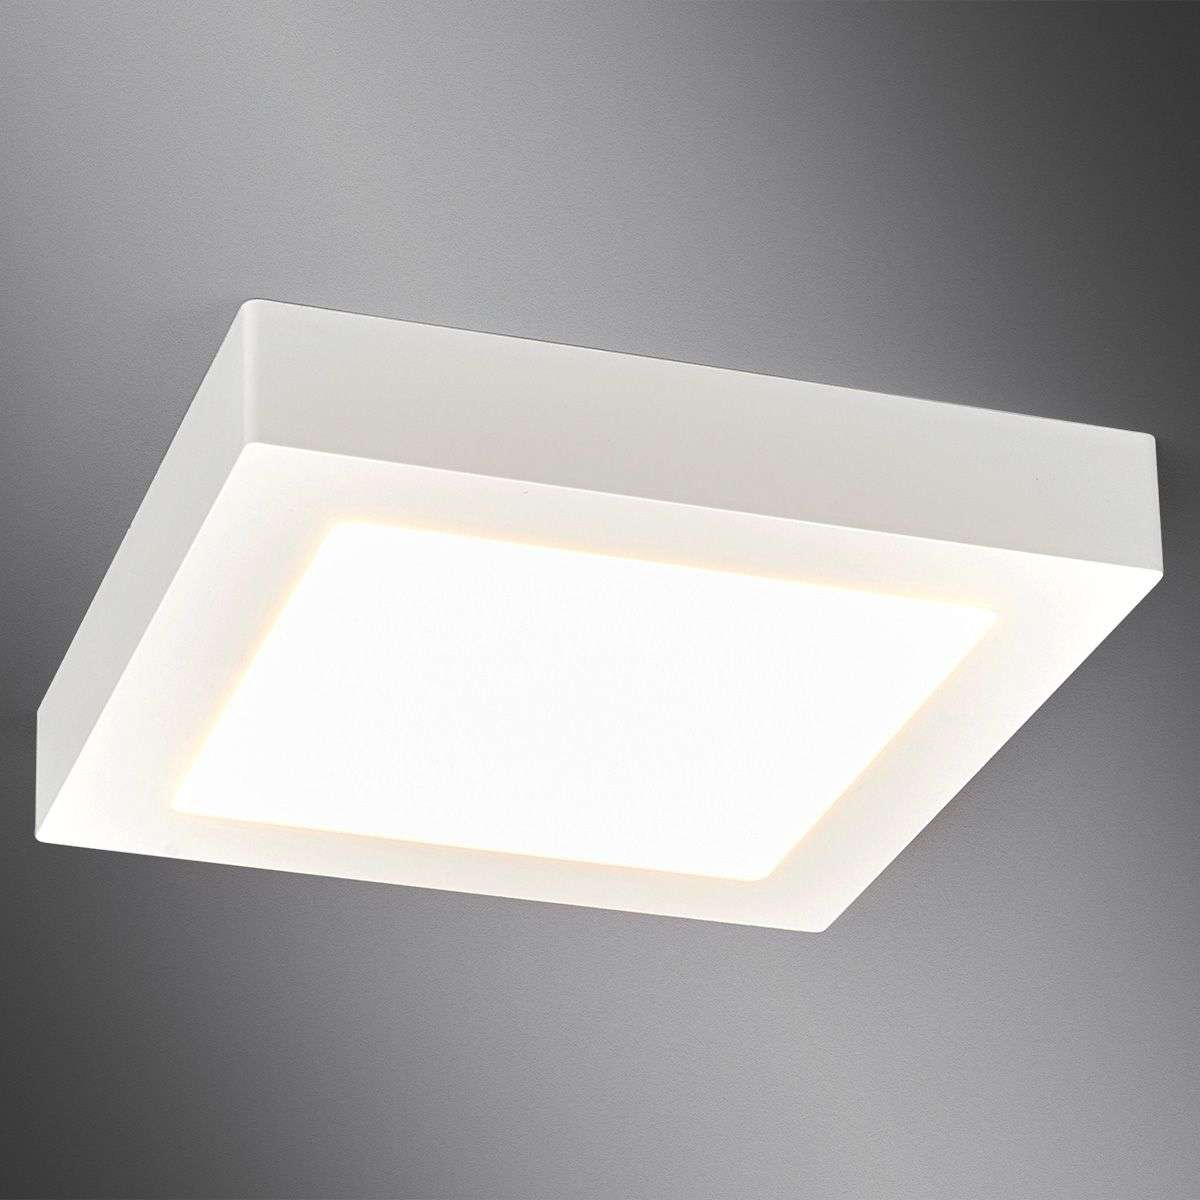 White, square LED bathroom ceiling light Rayan | Lights.ie